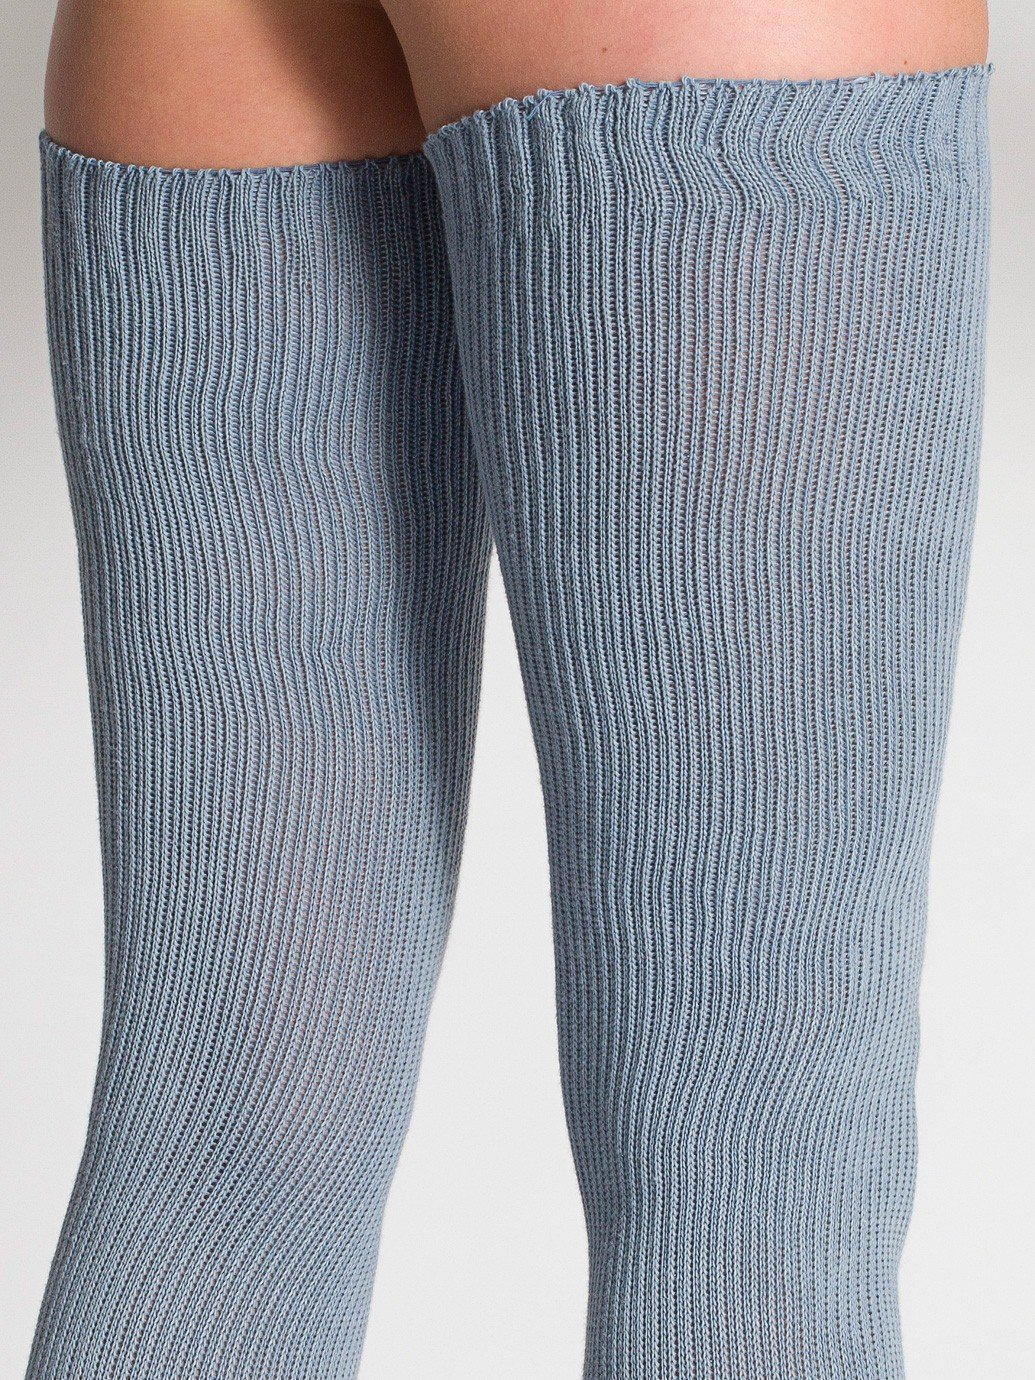 471372c022511 American Apparel Cotton Solid Thigh-High Socks - Evan Webster INK